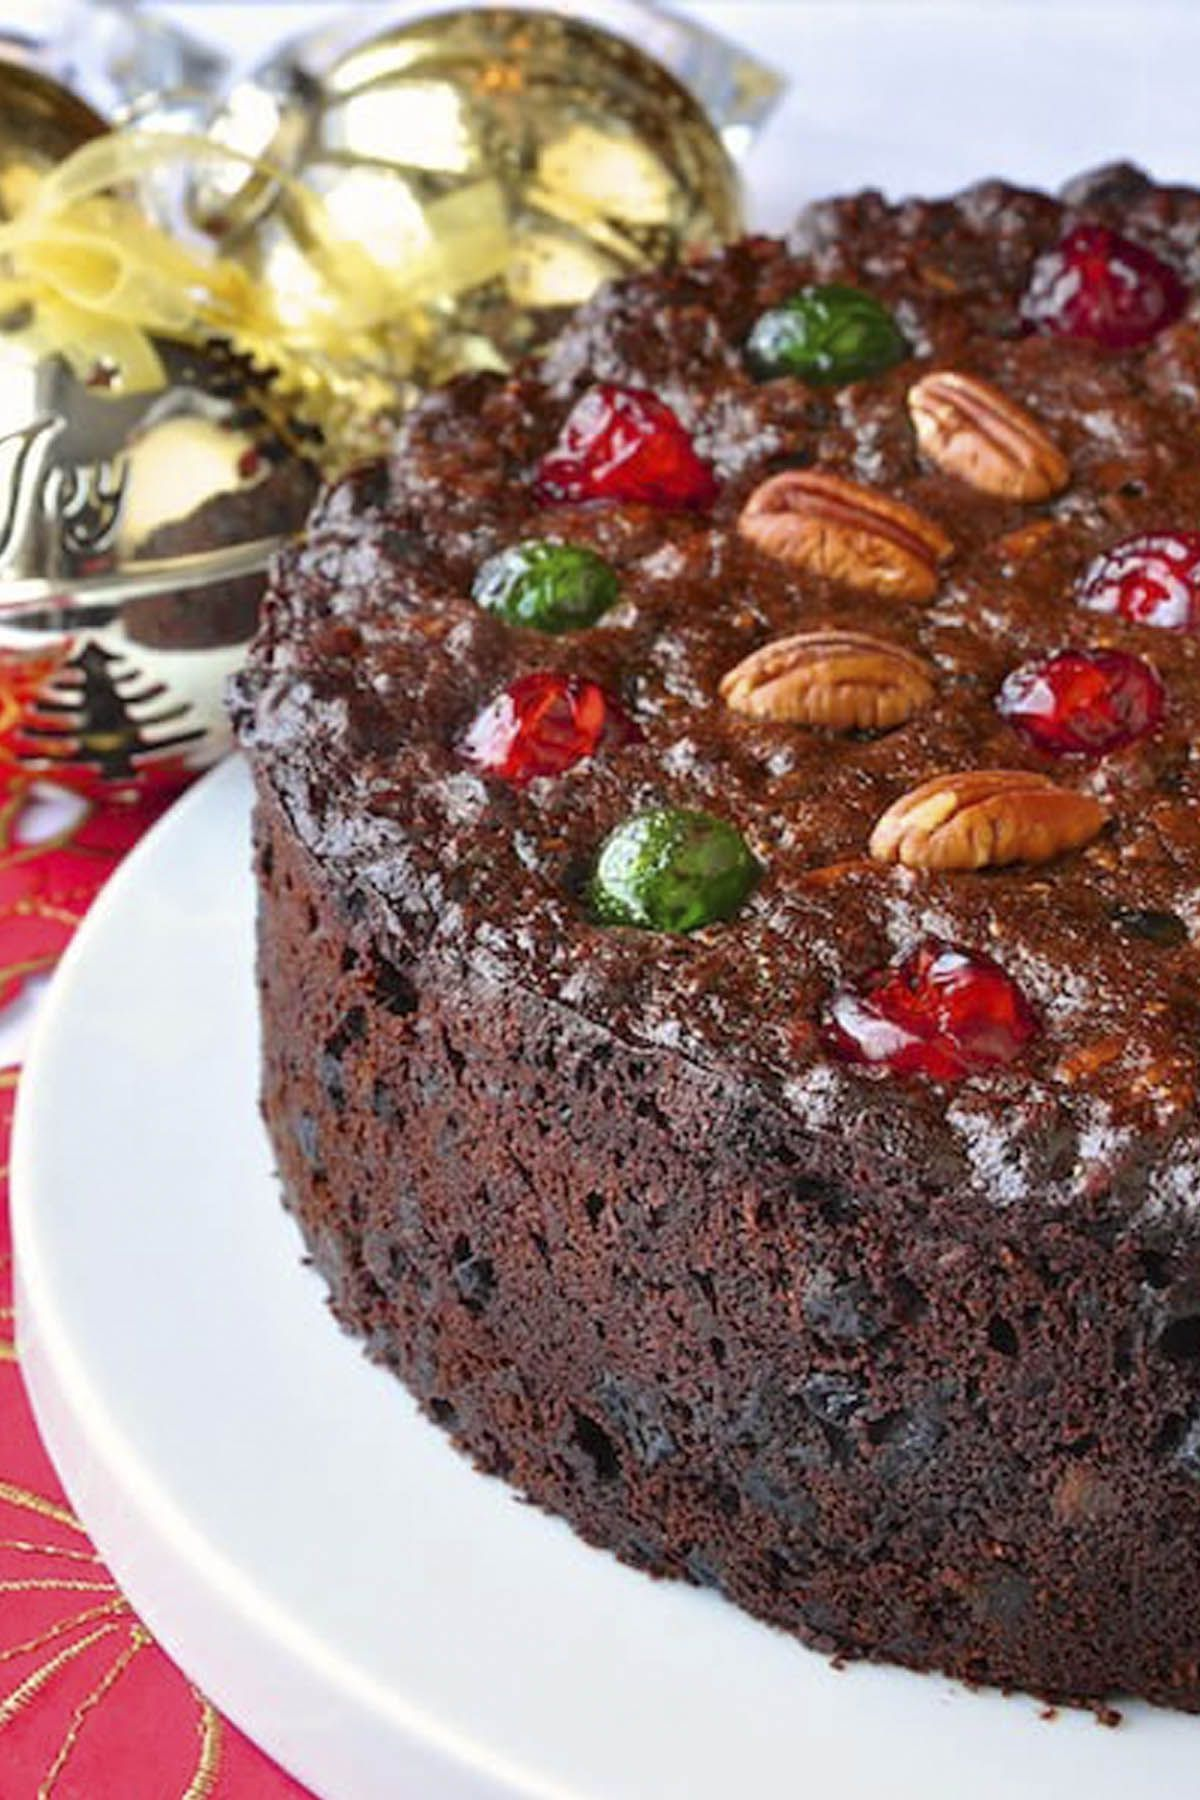 13 Delicious Fruitcake Recipes That Will Wow At Christmas | My foods ...